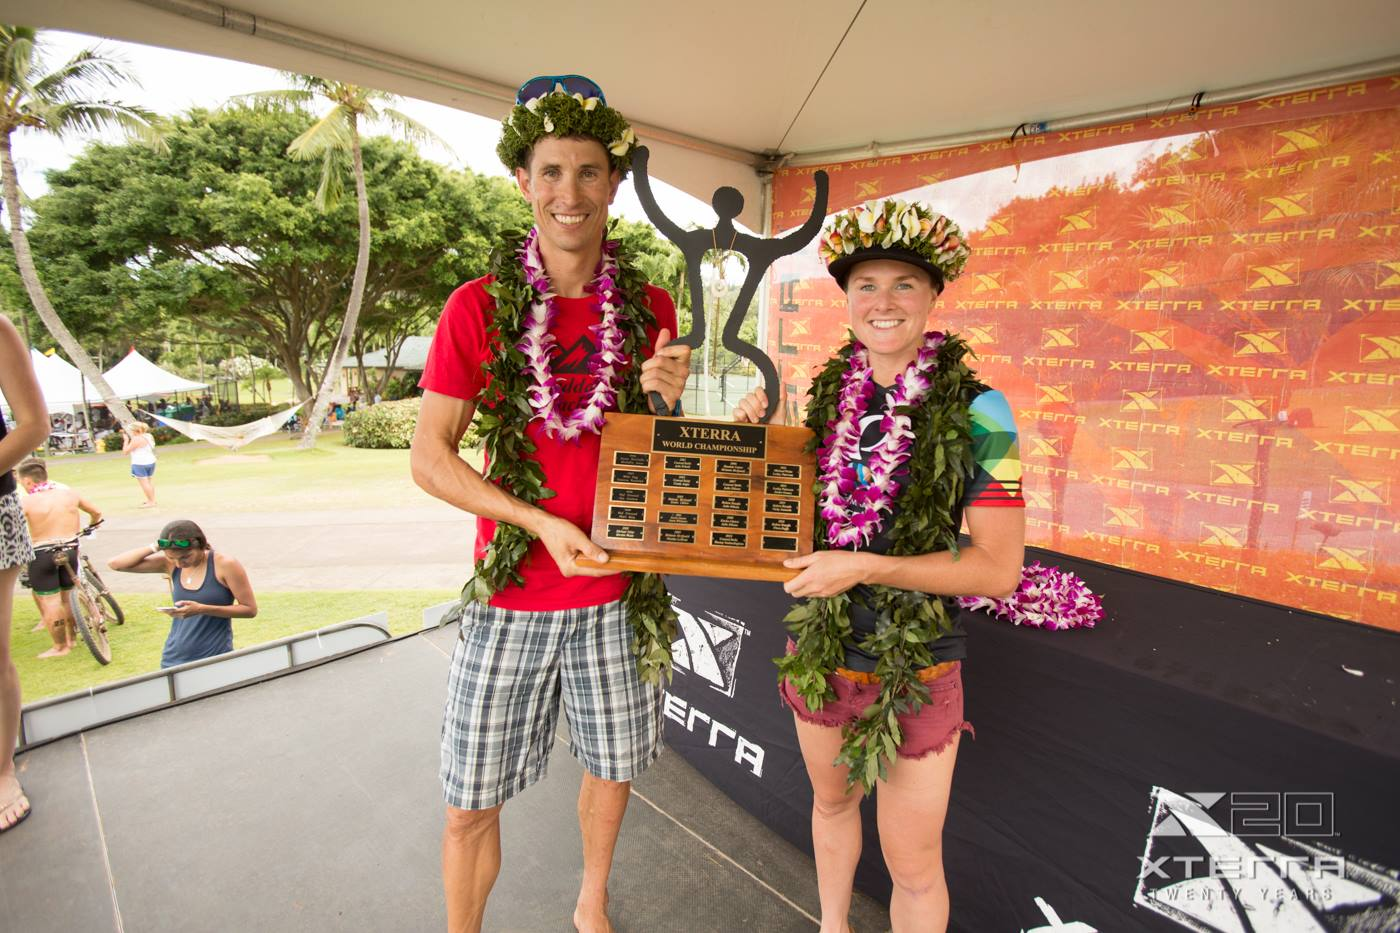 XTERRA_WORLD_CHAMPIONSHIP_2015_00096